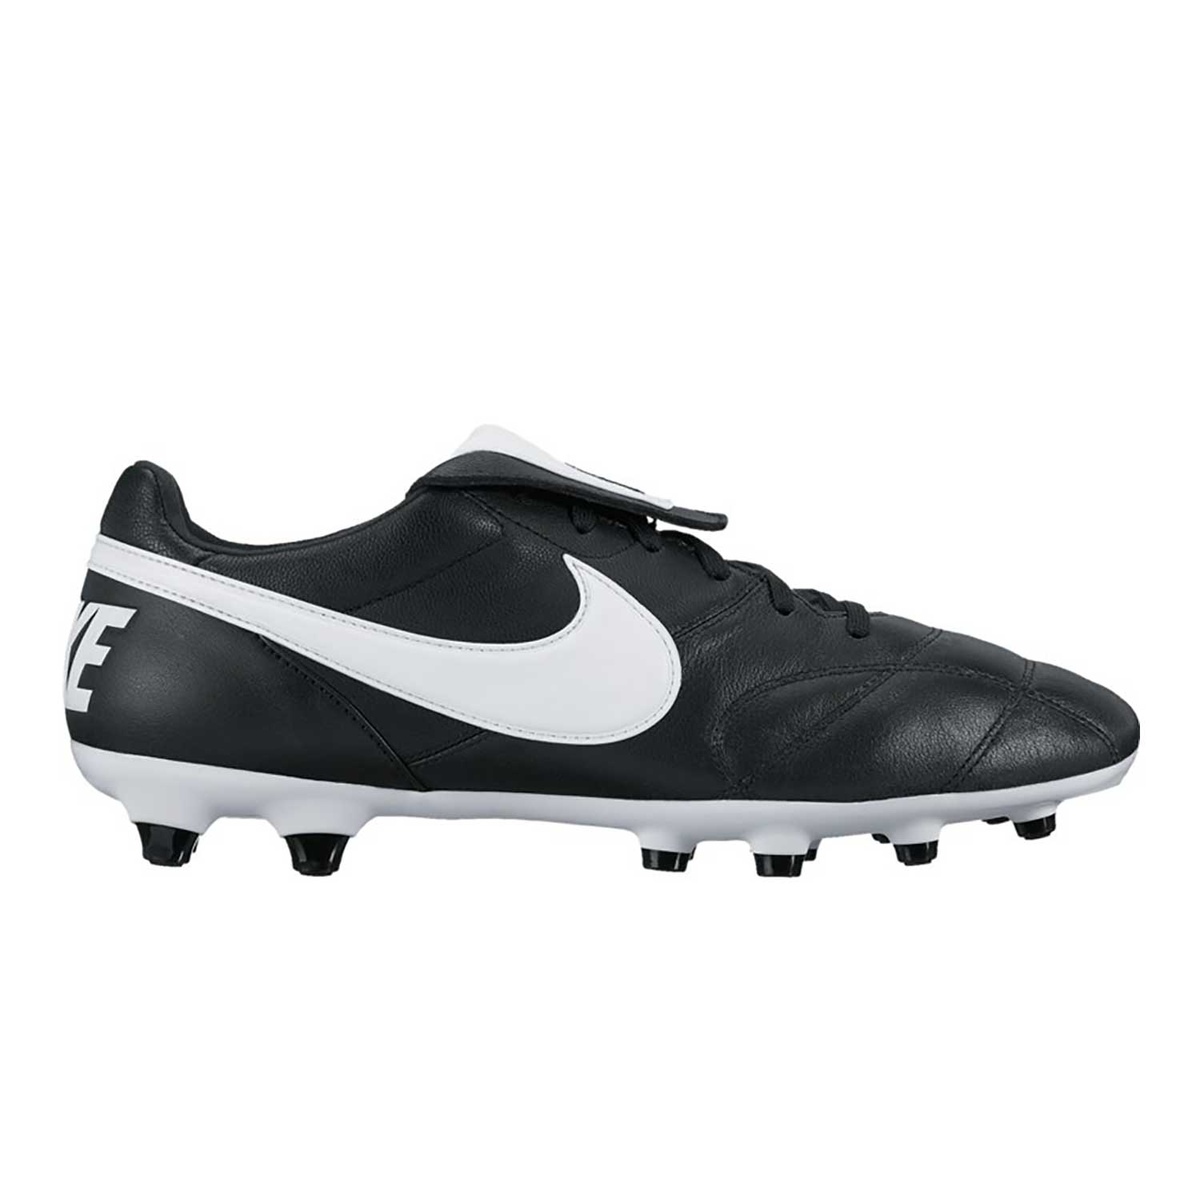 c67ffe4c7fb45 Acquista 2 OFF QUALSIASI nike jr mercurial trovaprezzi CASE E ...